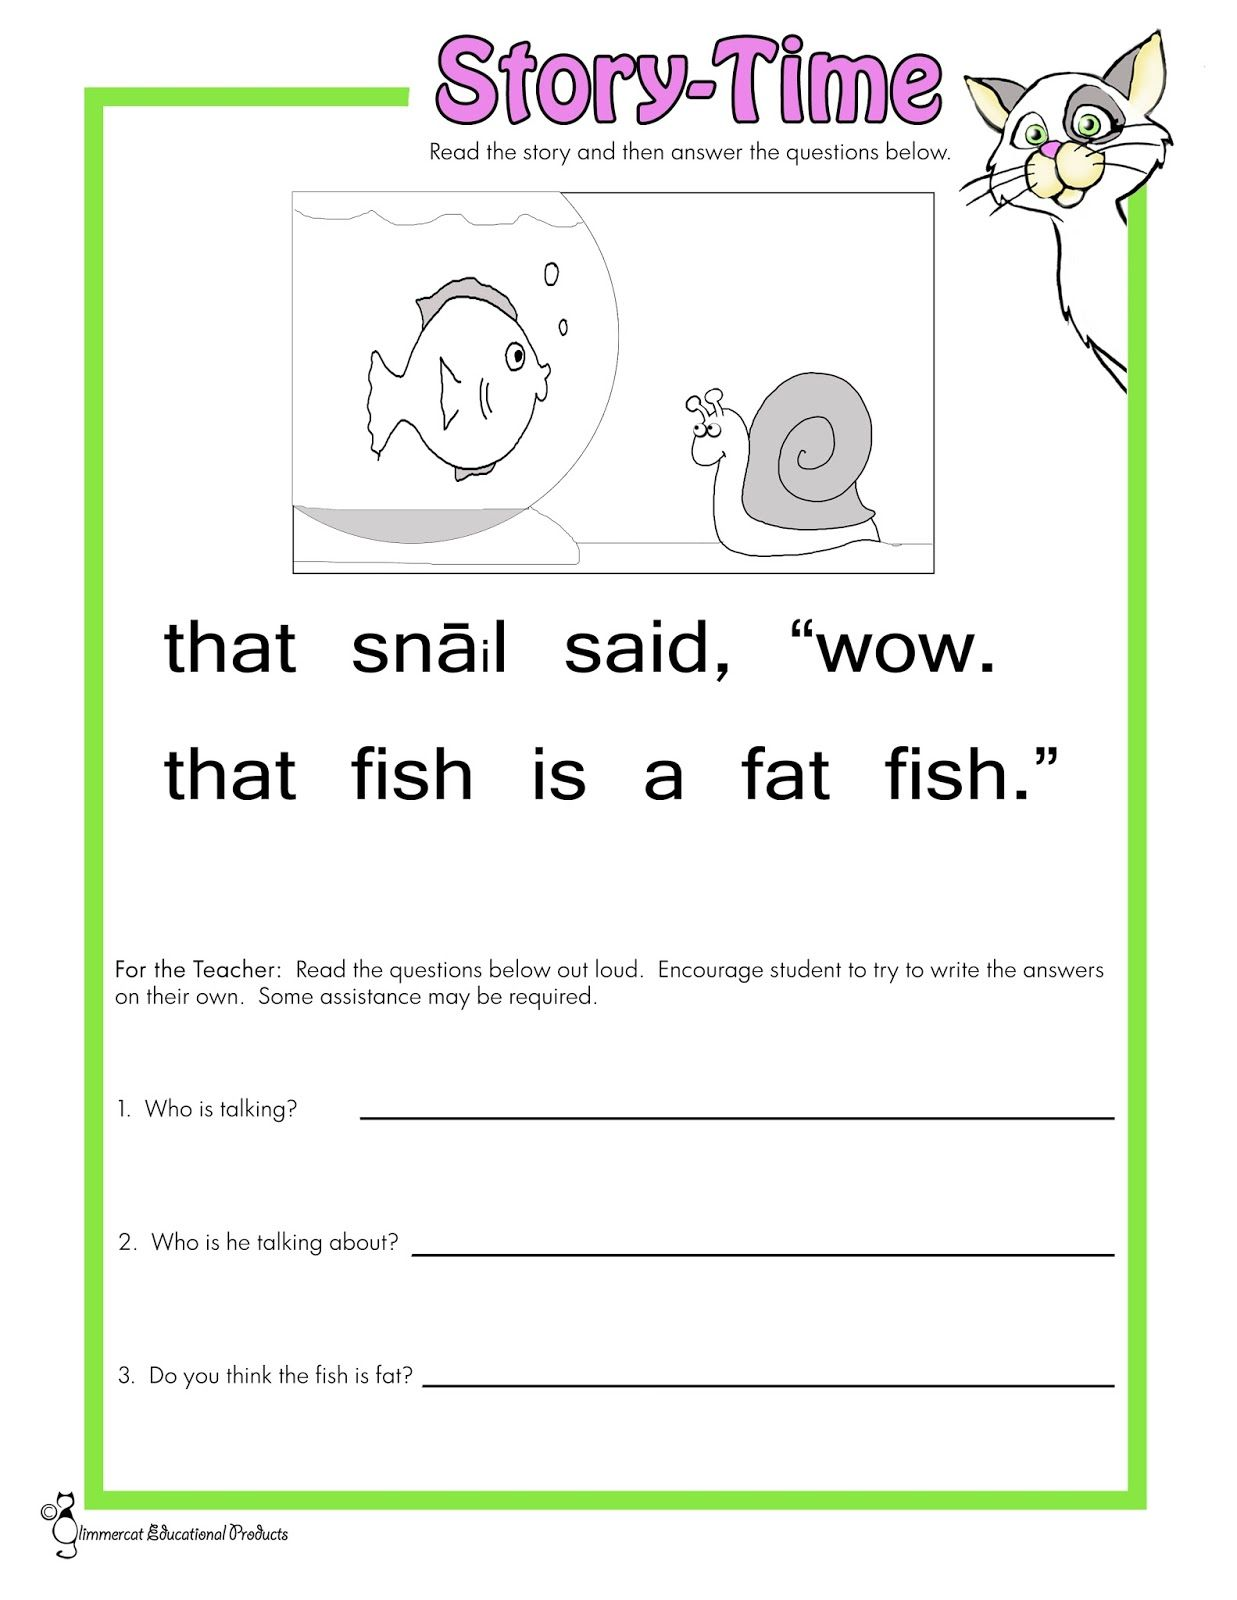 worksheet Teach Your Child To Read In 100 Easy Lessons Worksheets link to a free phonics packet over 30 page pdf designed as of worksheets crafts reading activities for very early readers